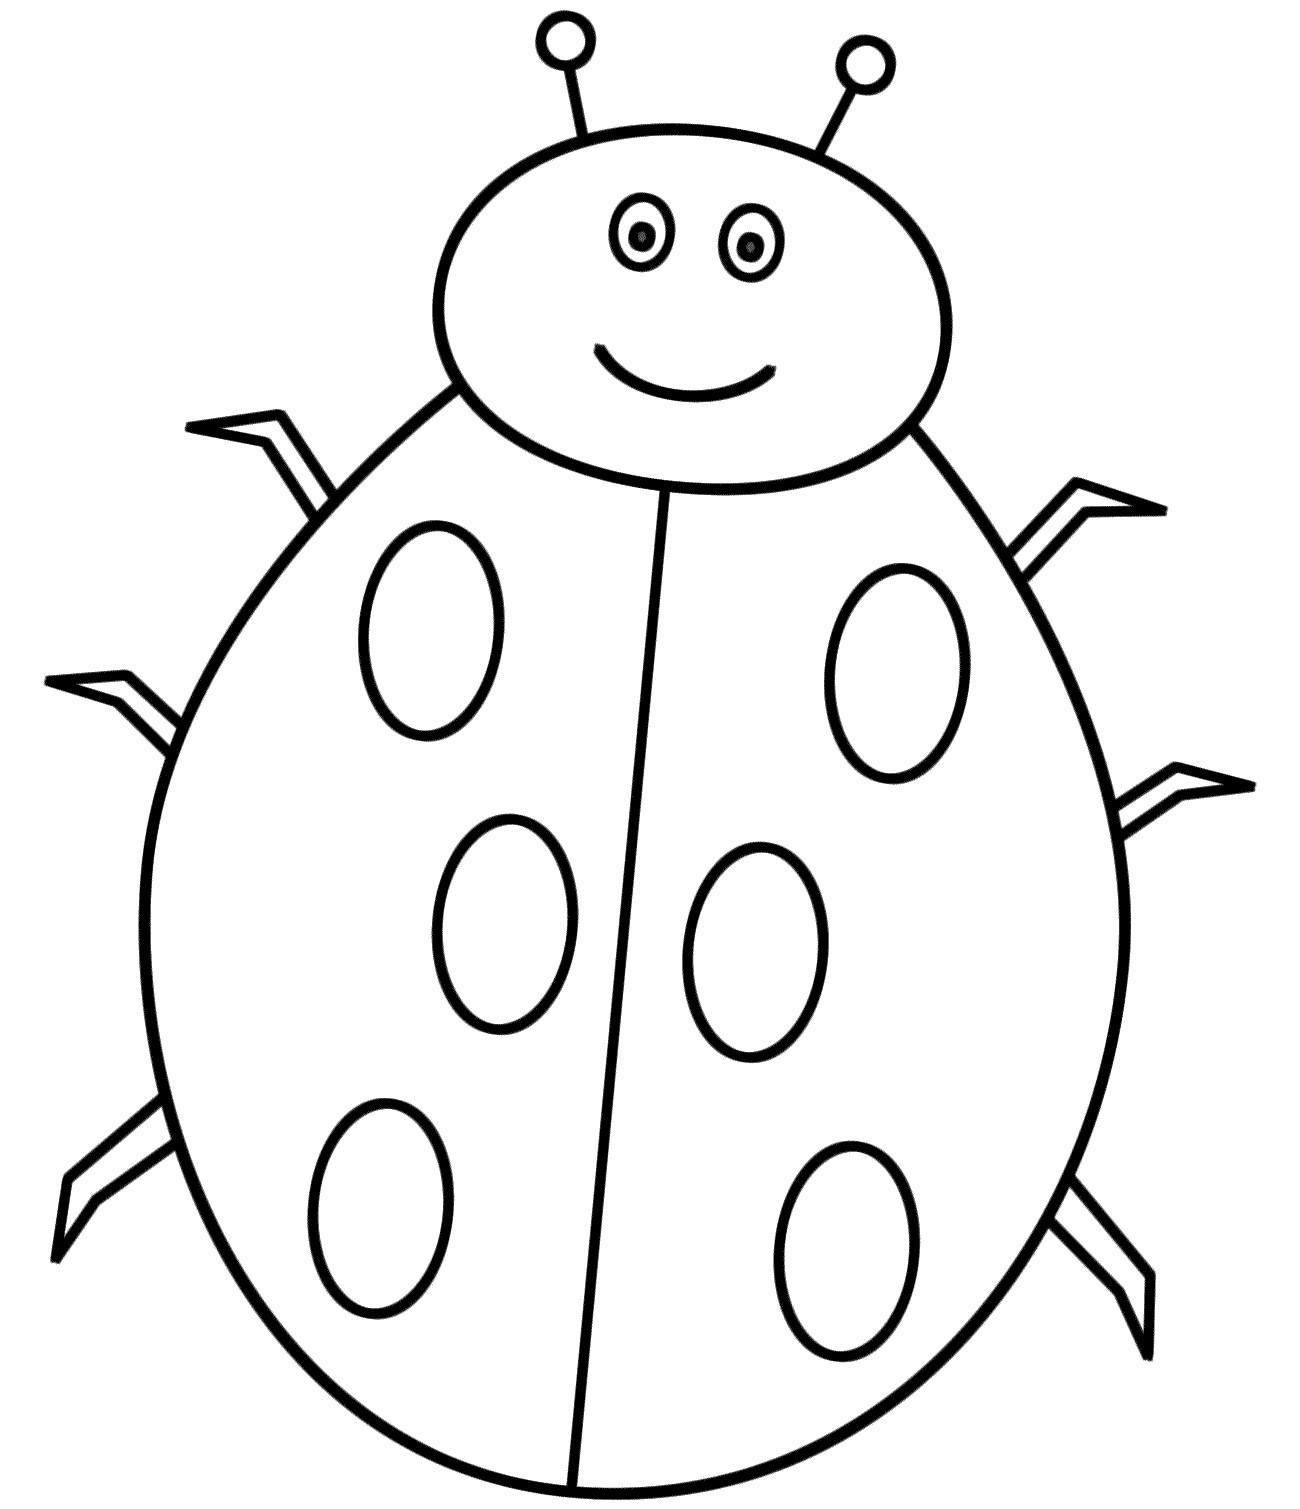 16 Colouring Pictures For Toddlers Ladybug Coloring Page Bug Coloring Pages Free Printable Coloring Pages [ 1509 x 1300 Pixel ]